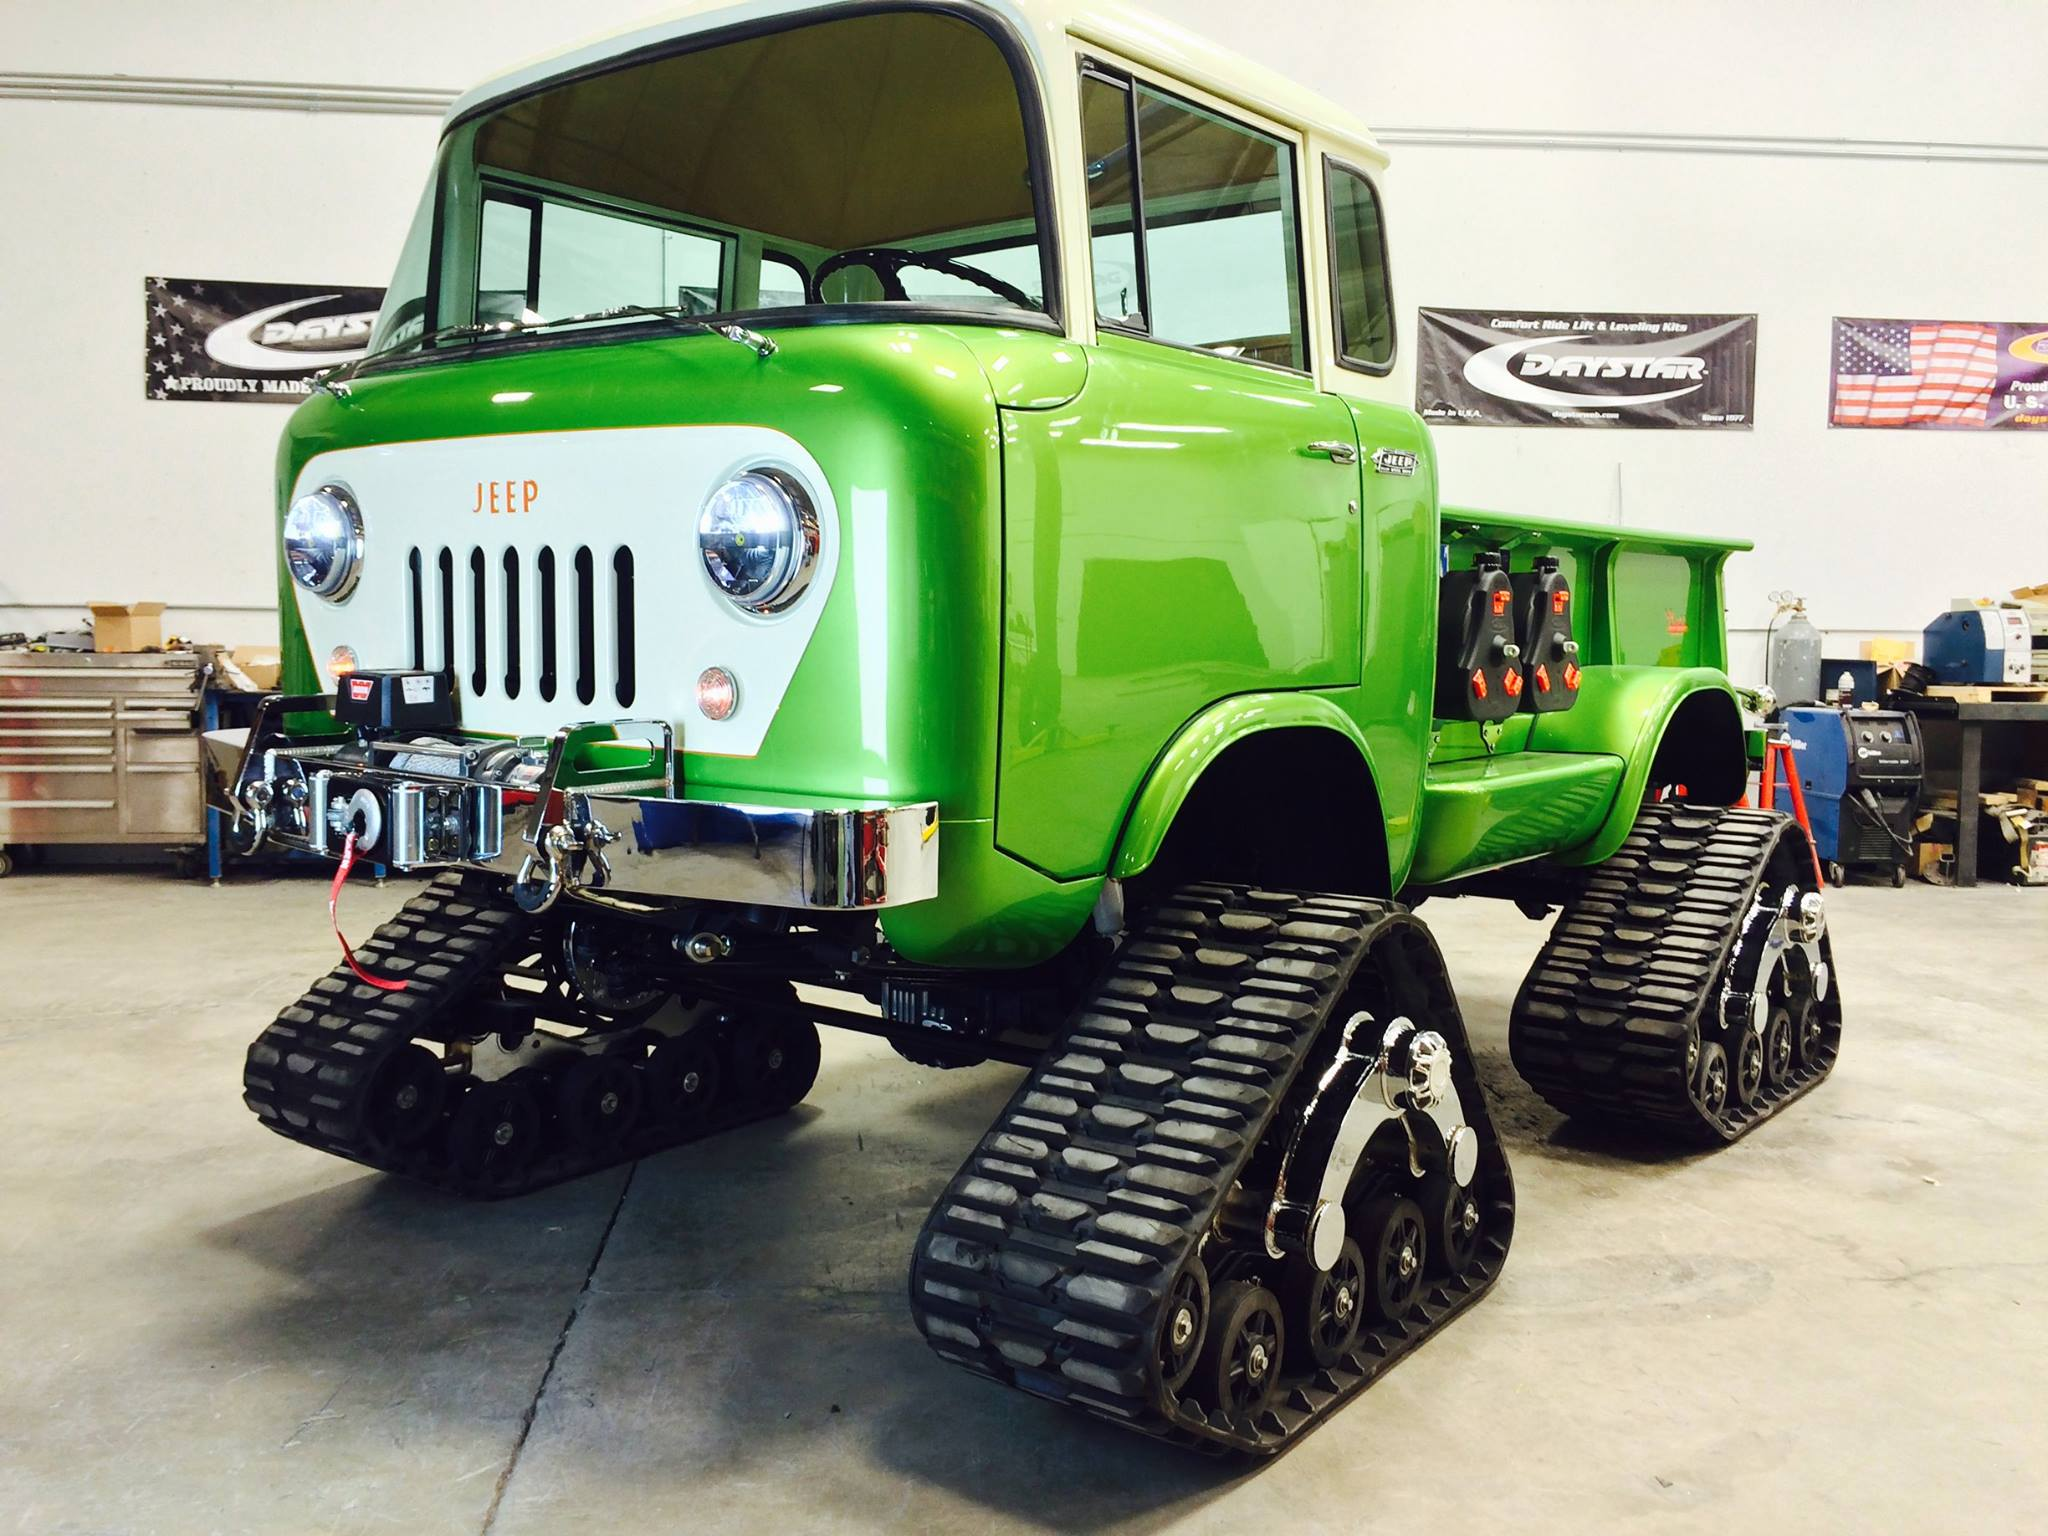 jeep fc 170 pickup has tracks and acid green paint